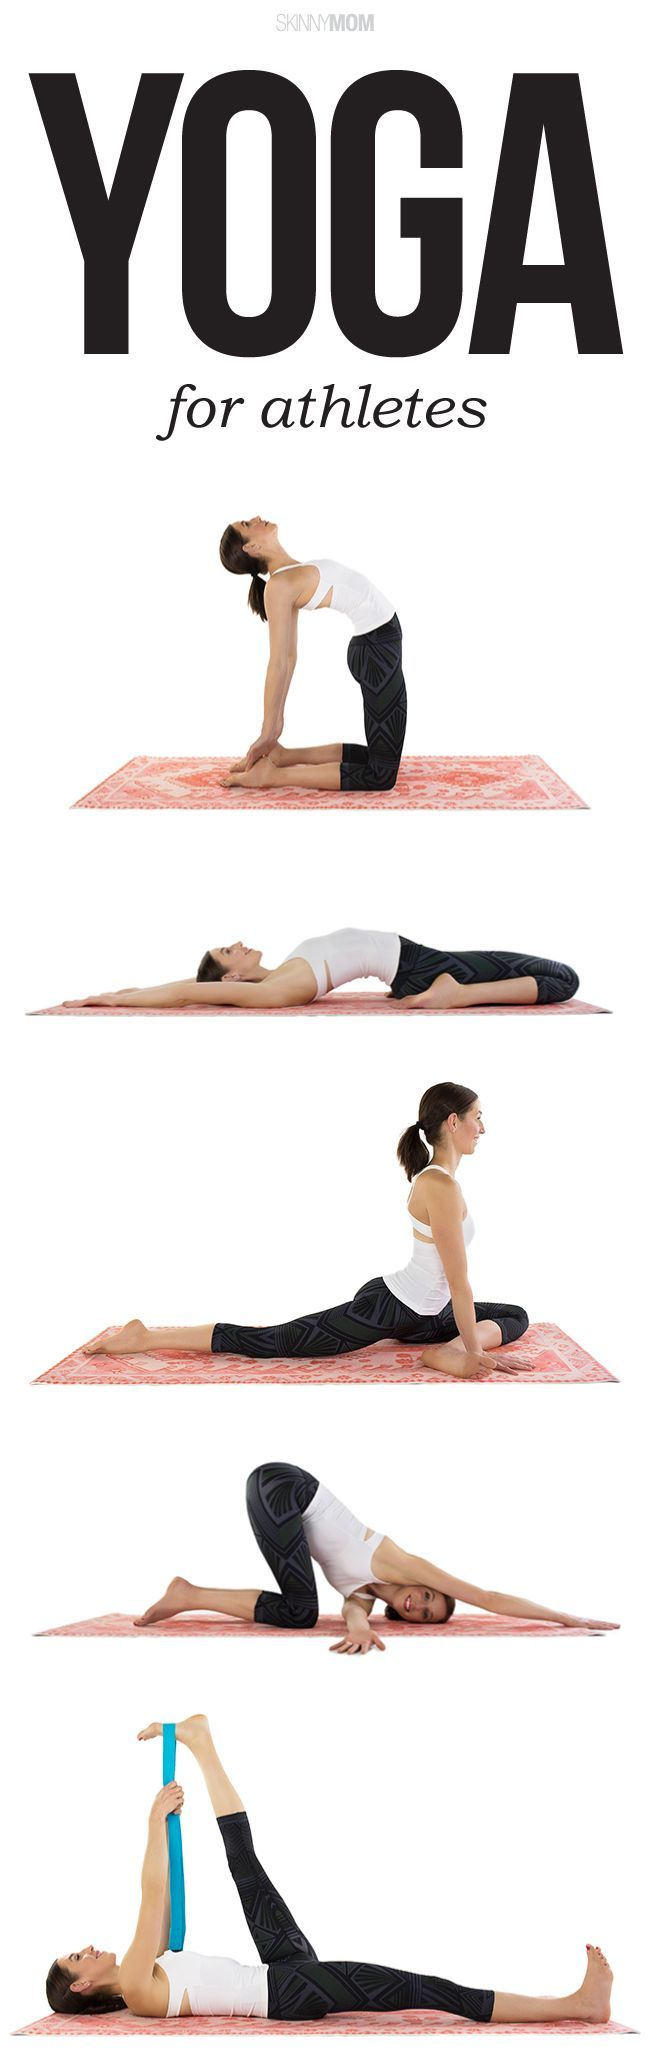 Prevent injury with these simple yoga moves!